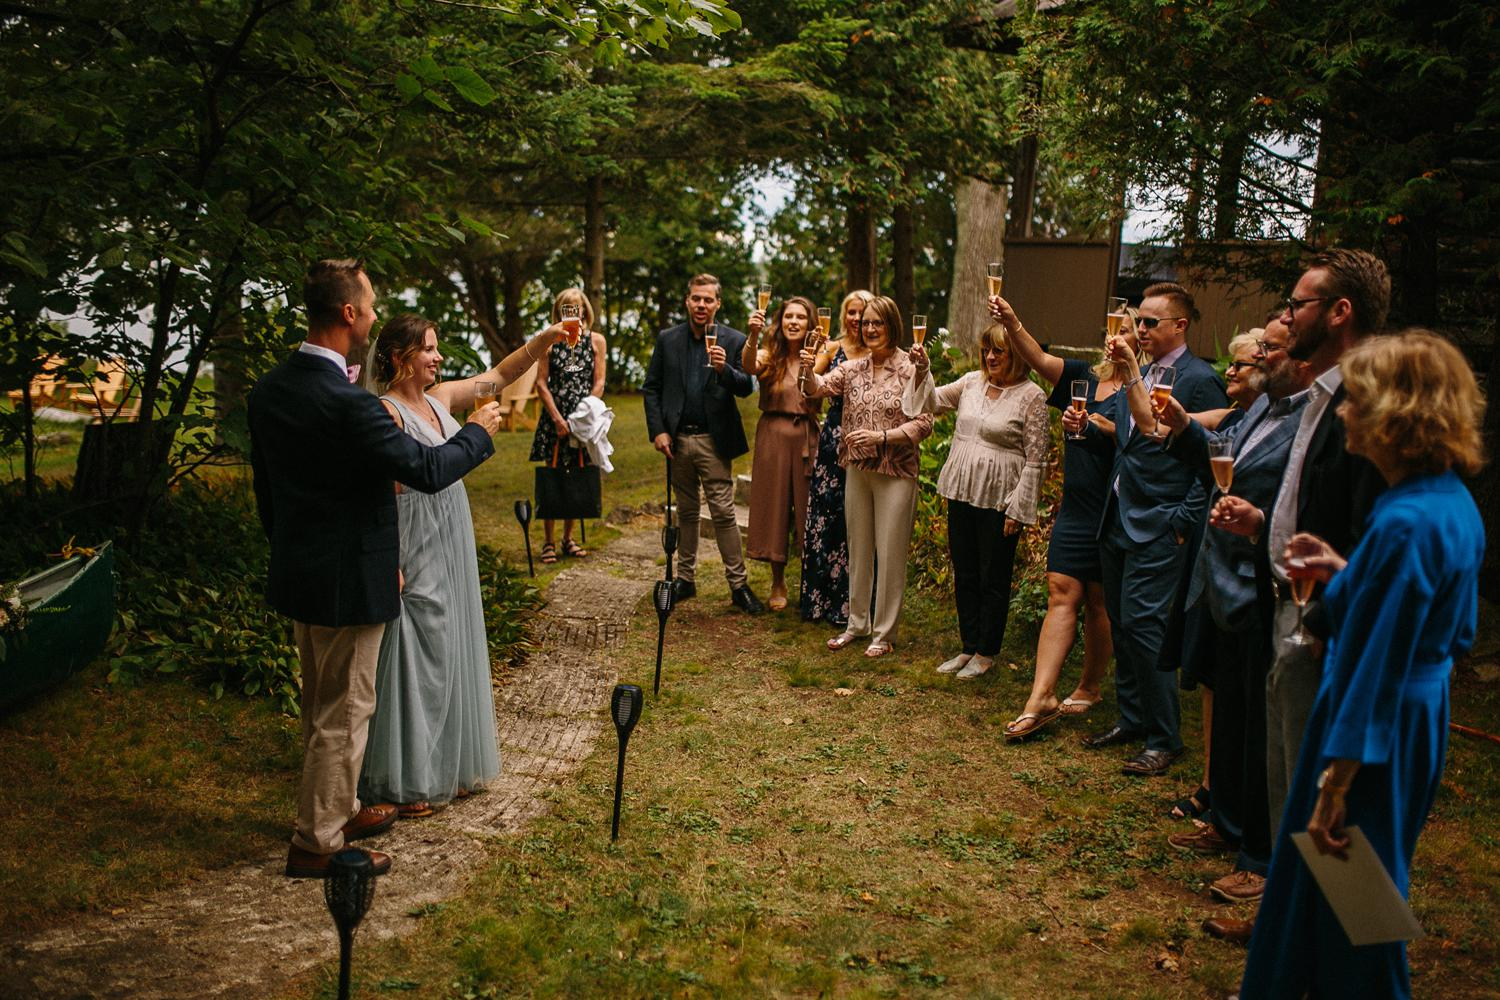 kerry ford photography - small intimate backyard rideau lake island wedding perth ontario-082.jpg